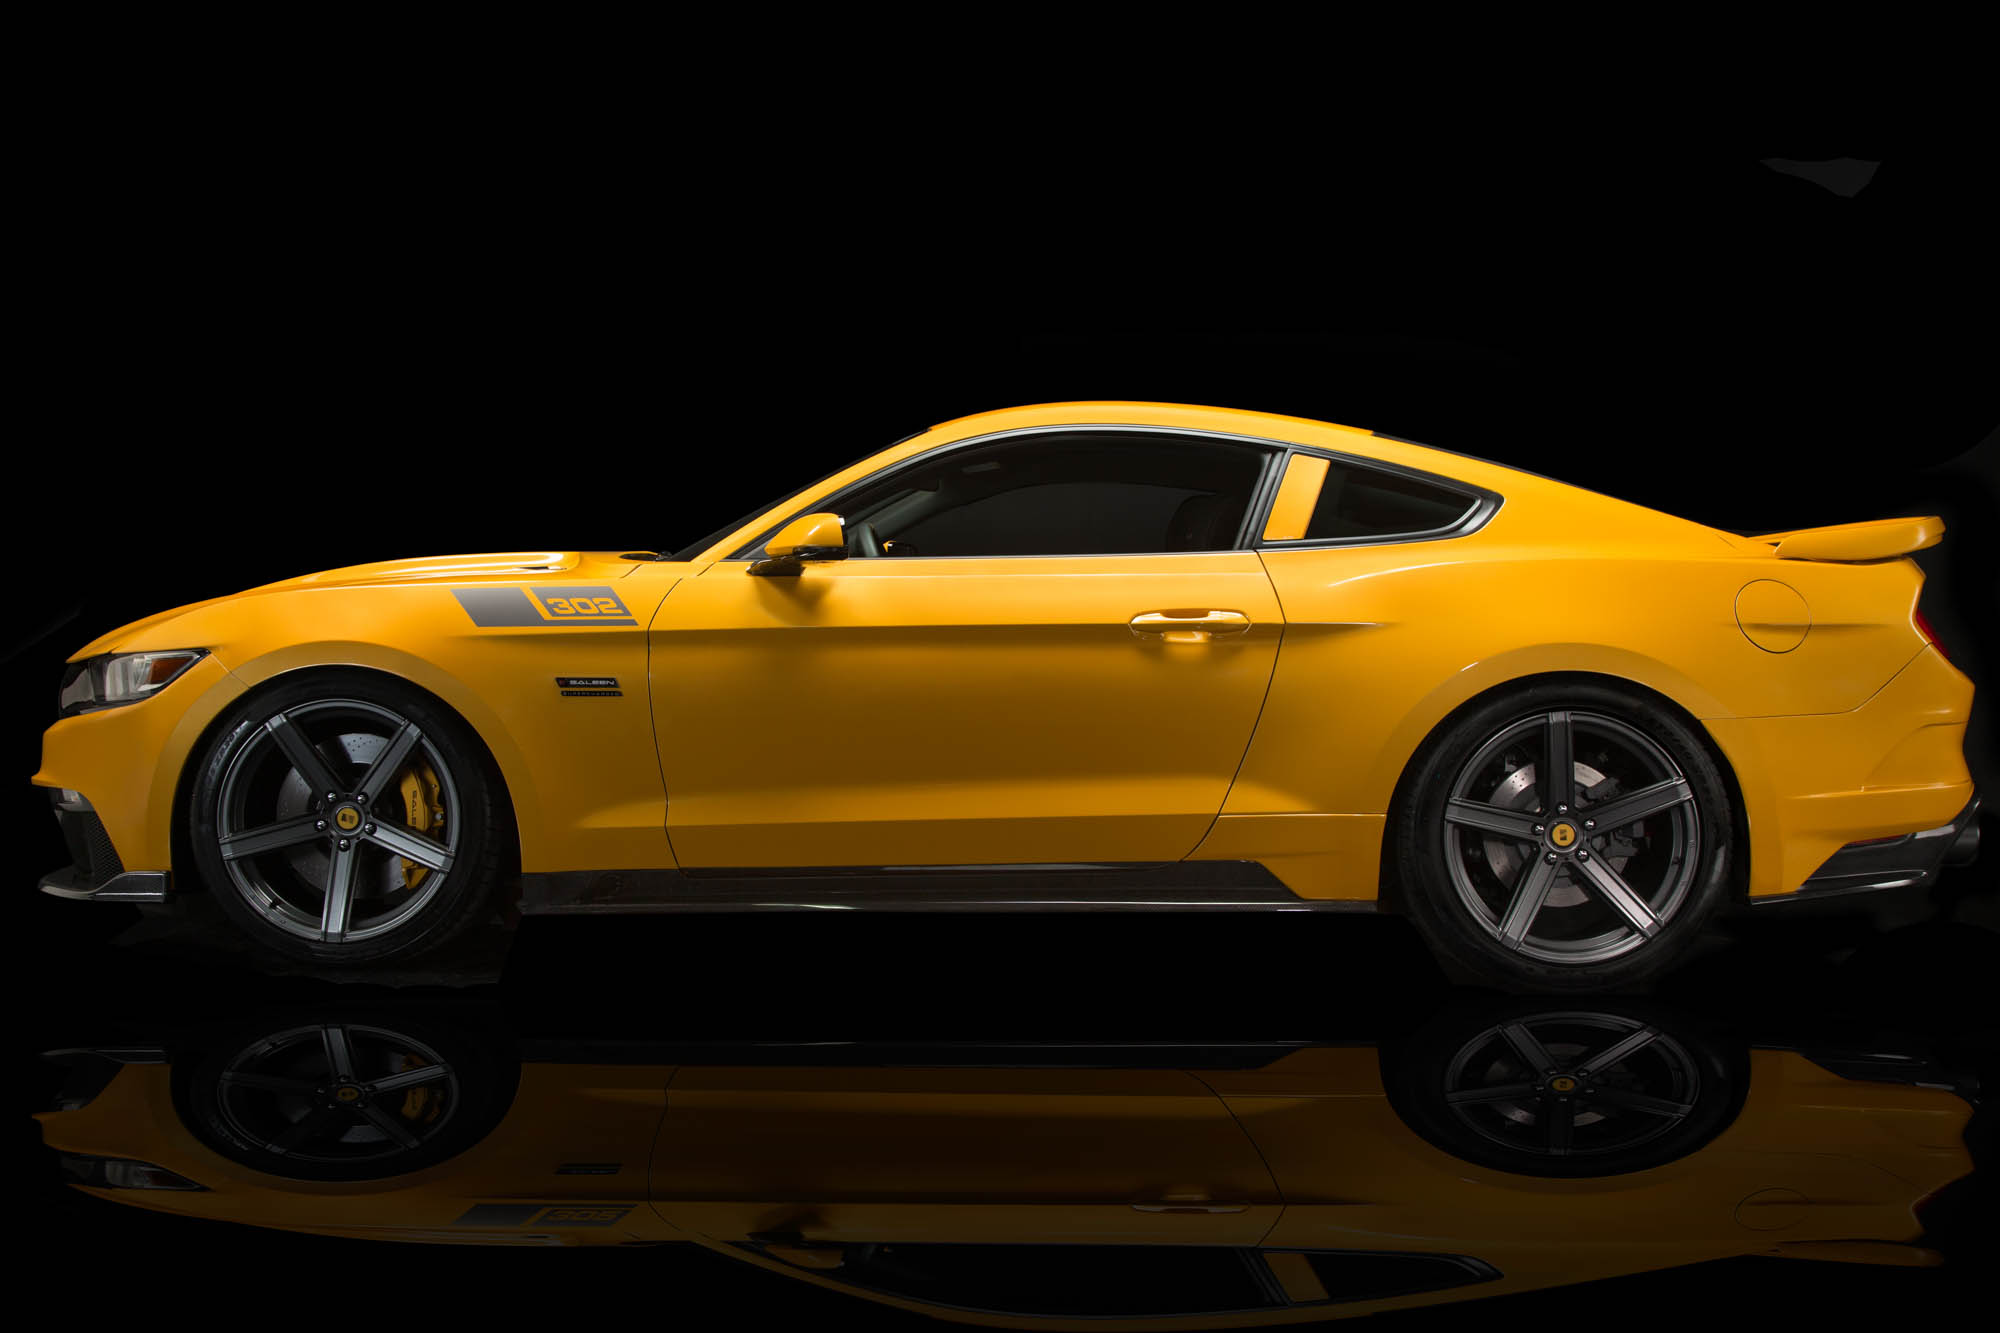 2016 Saleen Mustang >> 2015 Saleen Ford Mustang S302 Black Label - Muscle Cars News and Pictures